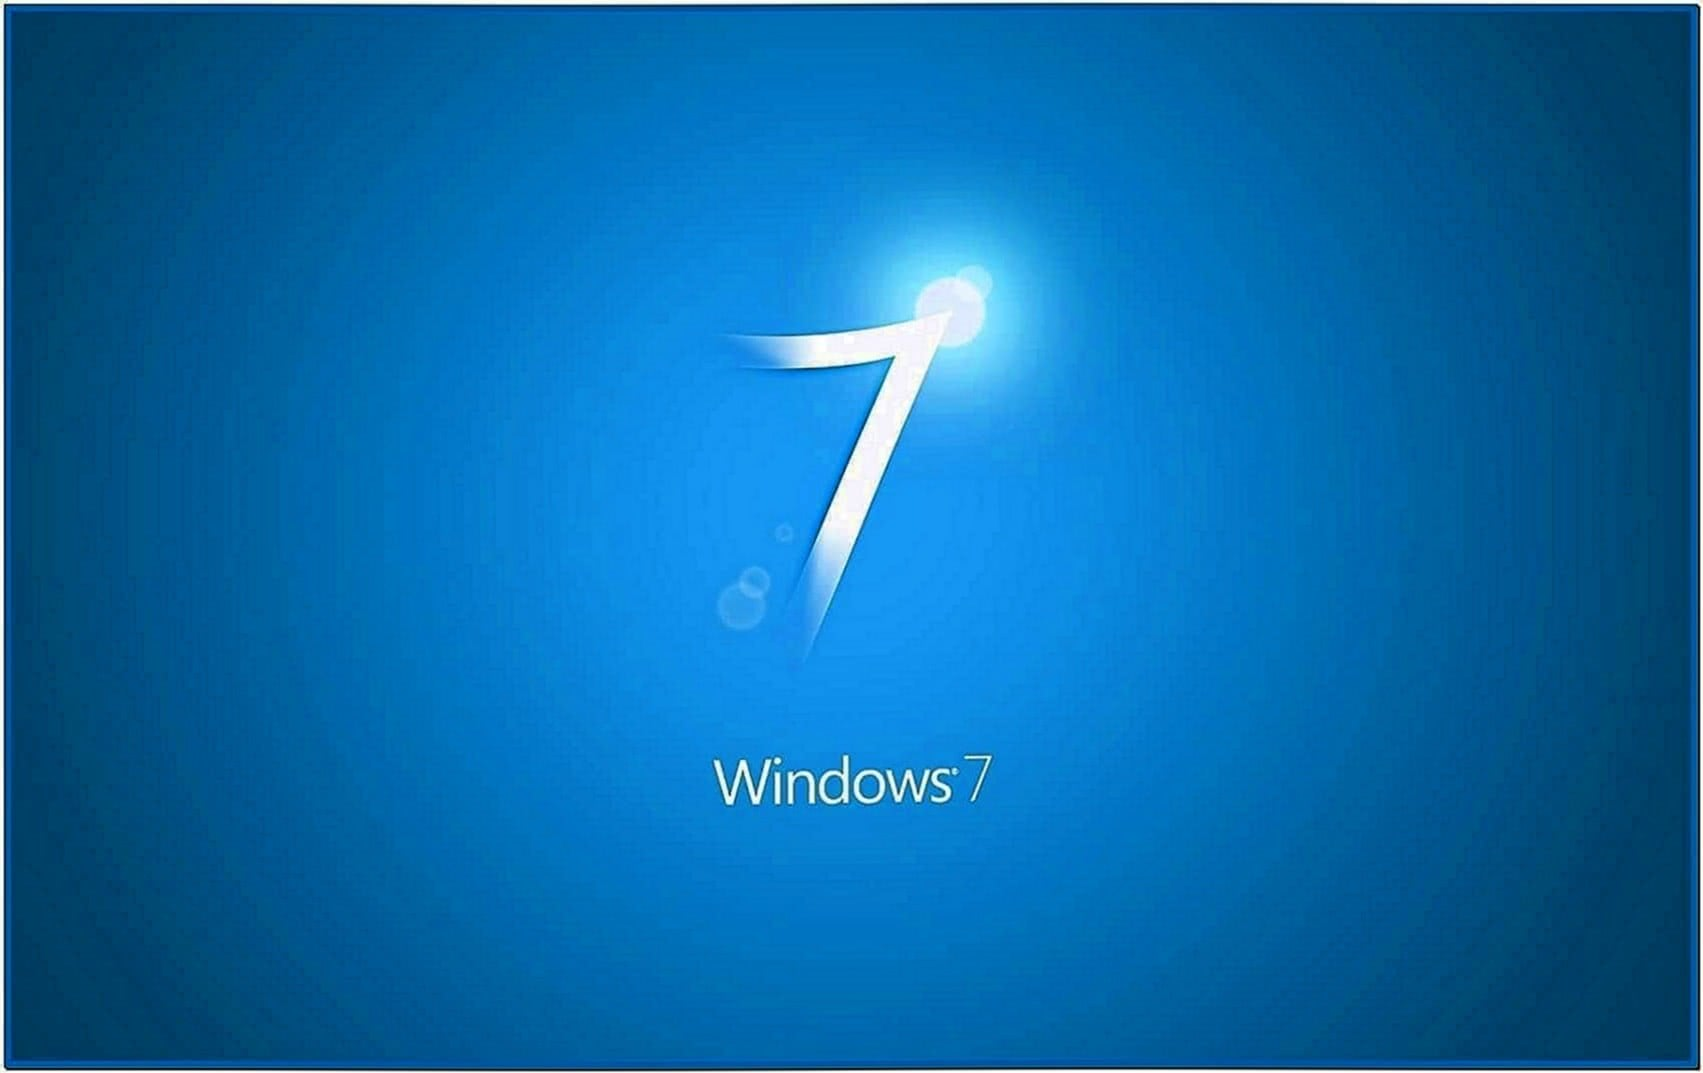 Screensaver as Desktop Wallpaper Windows 7